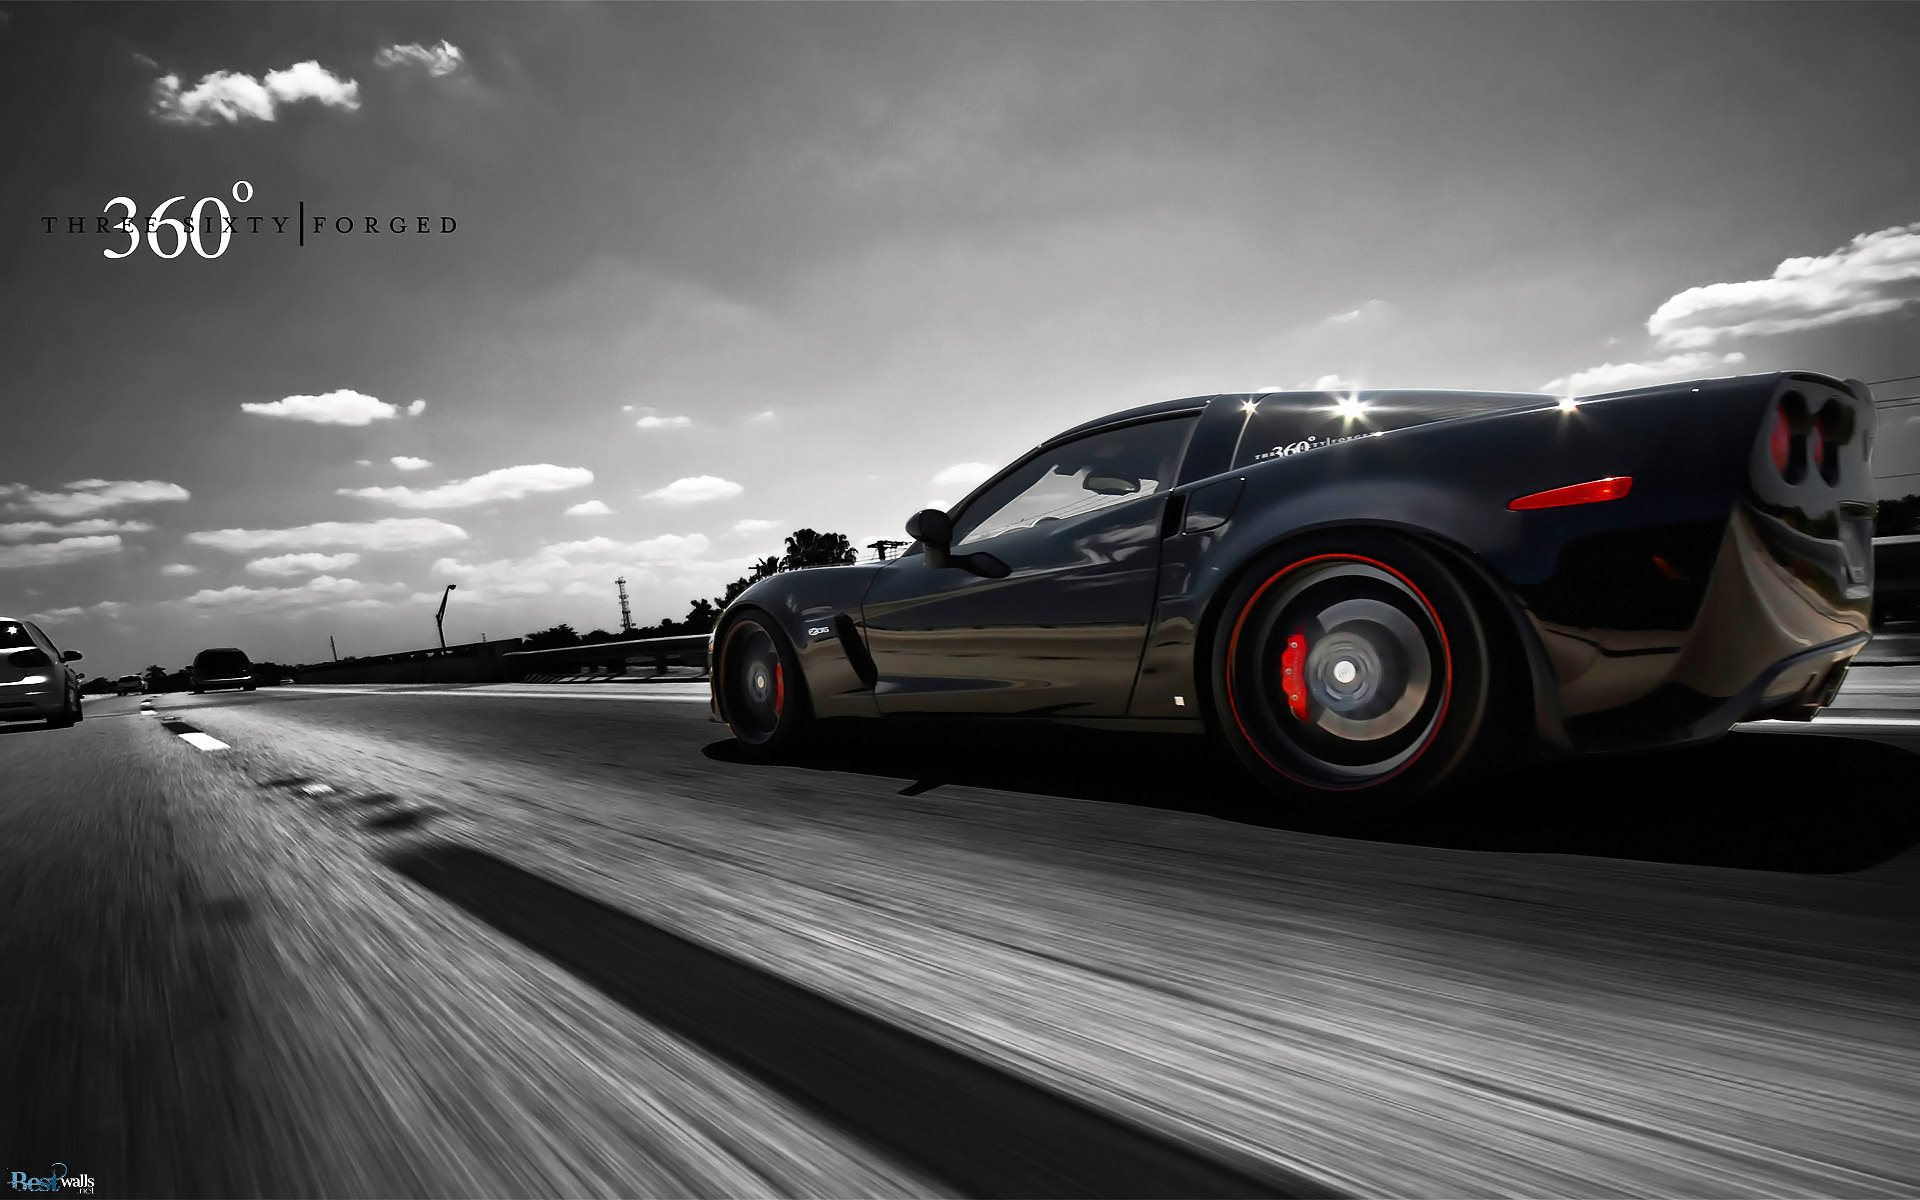 1 2013 Chevy Corvette Z06 HD Wallpapers | Background ...